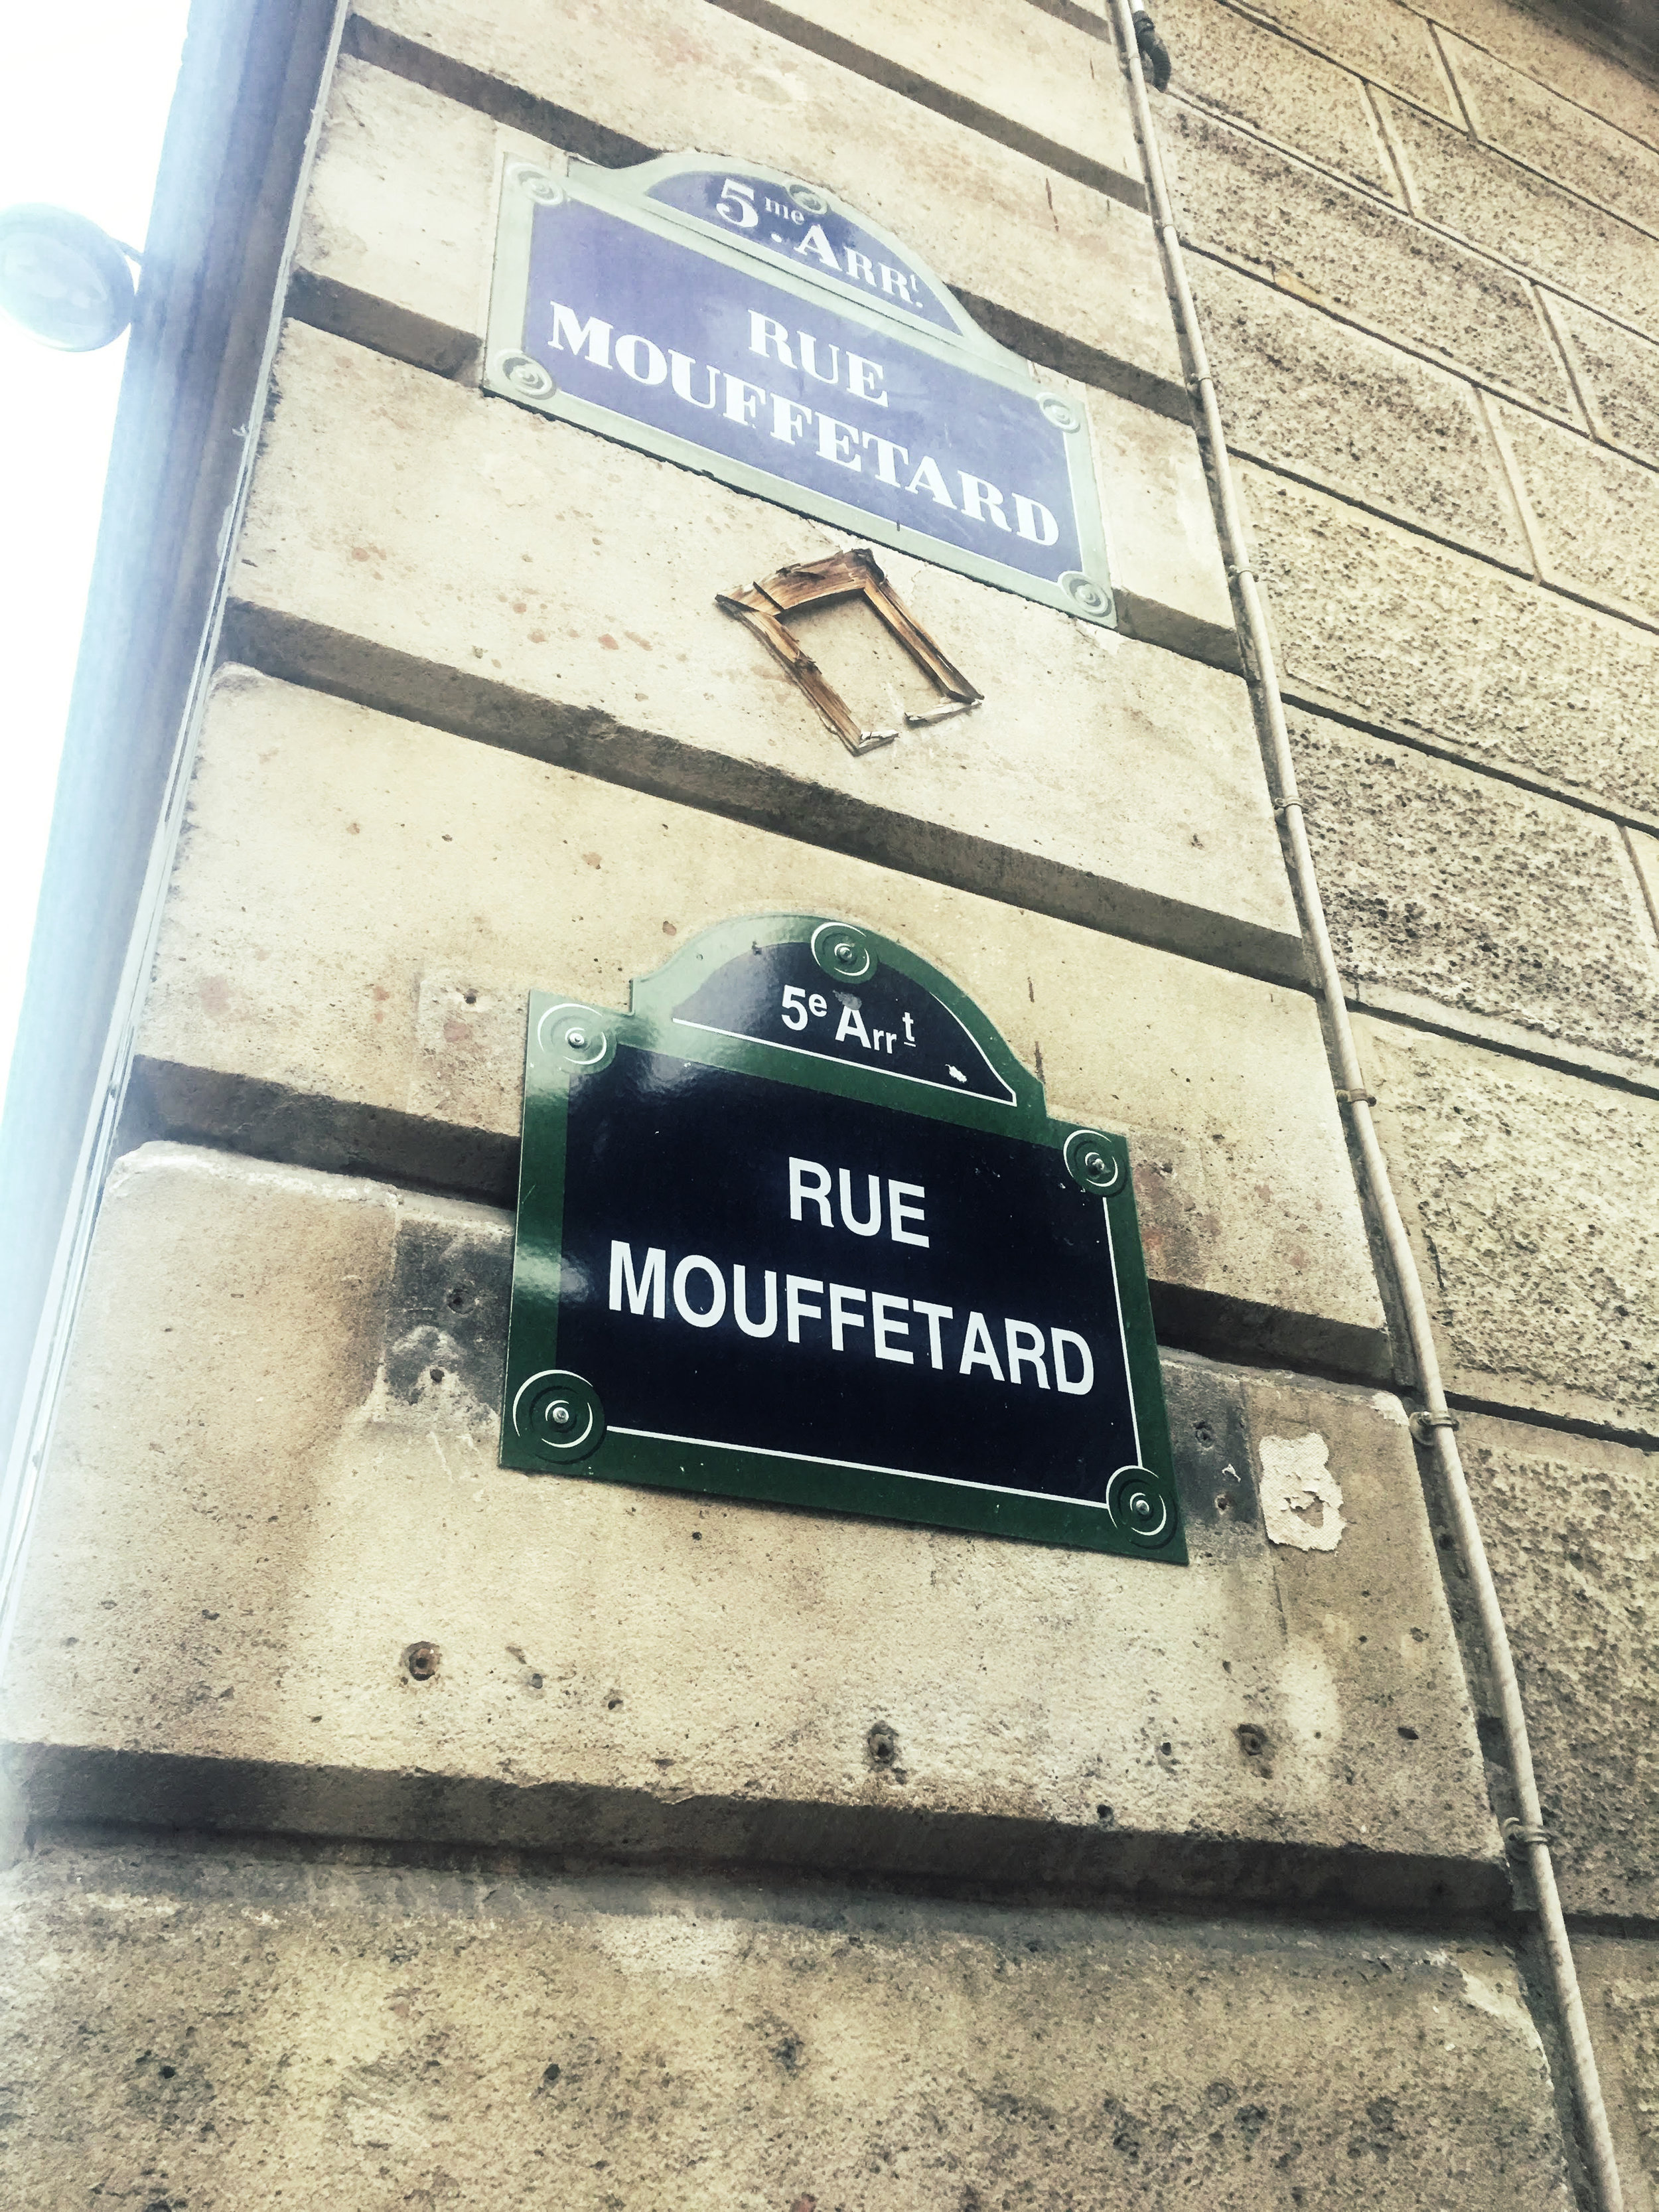 One of our primary local arterials, Rue Mouffetard: a name which becomes exponentially funnier the more wine you've had.